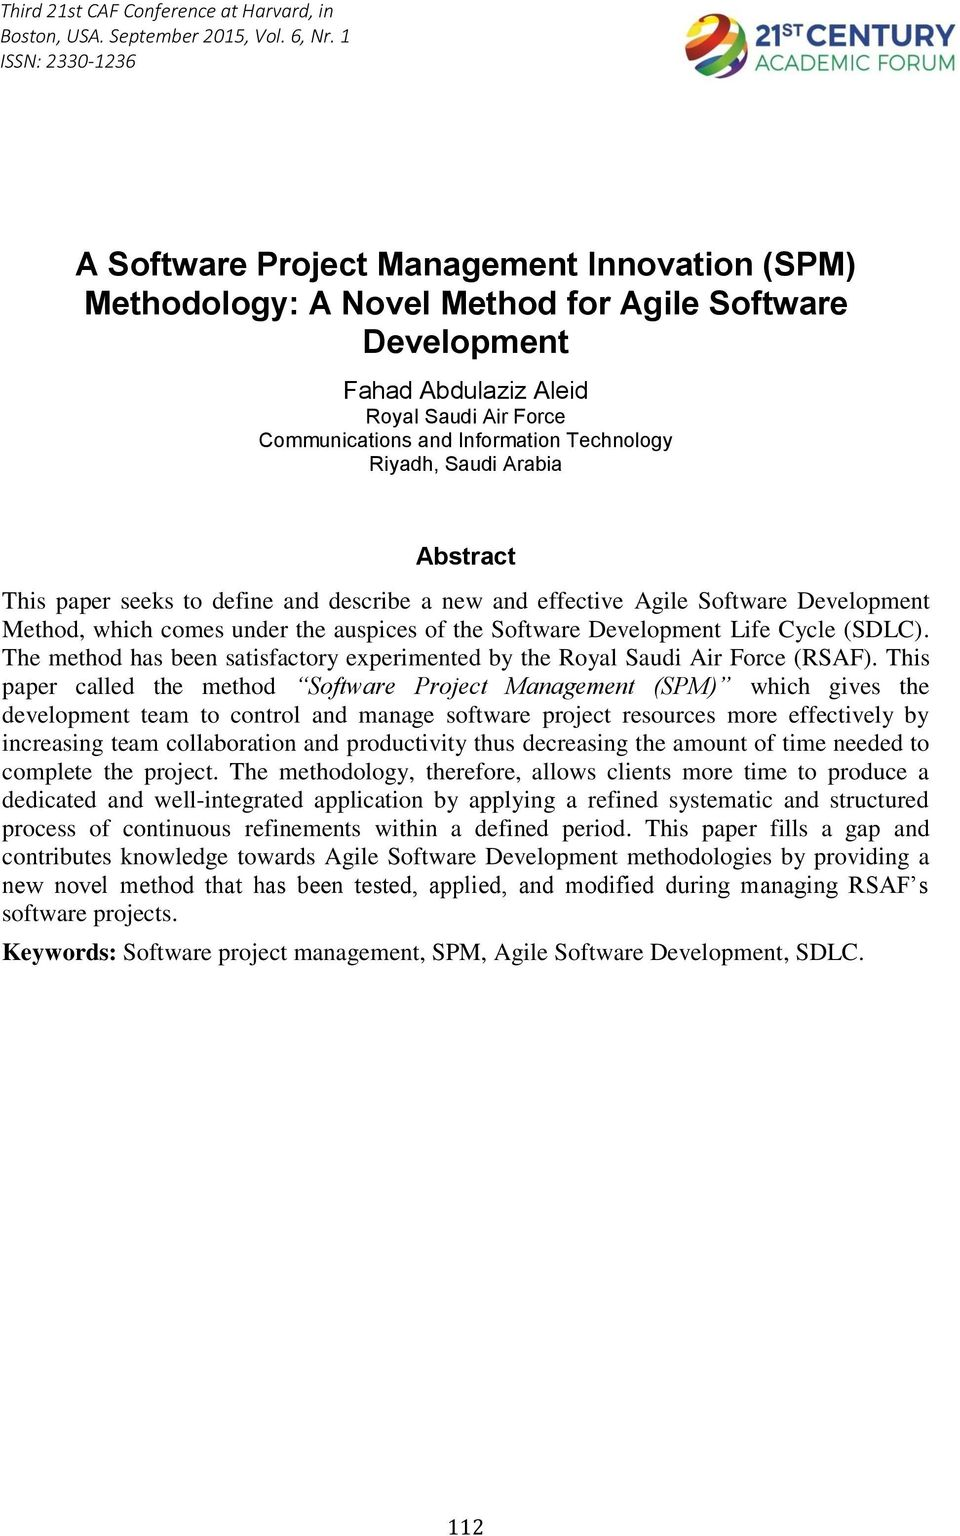 Technology Riyadh, Saudi Arabia Abstract This paper seeks to define and describe a new and effective Agile Software Development Method, which comes under the auspices of the Software Development Life